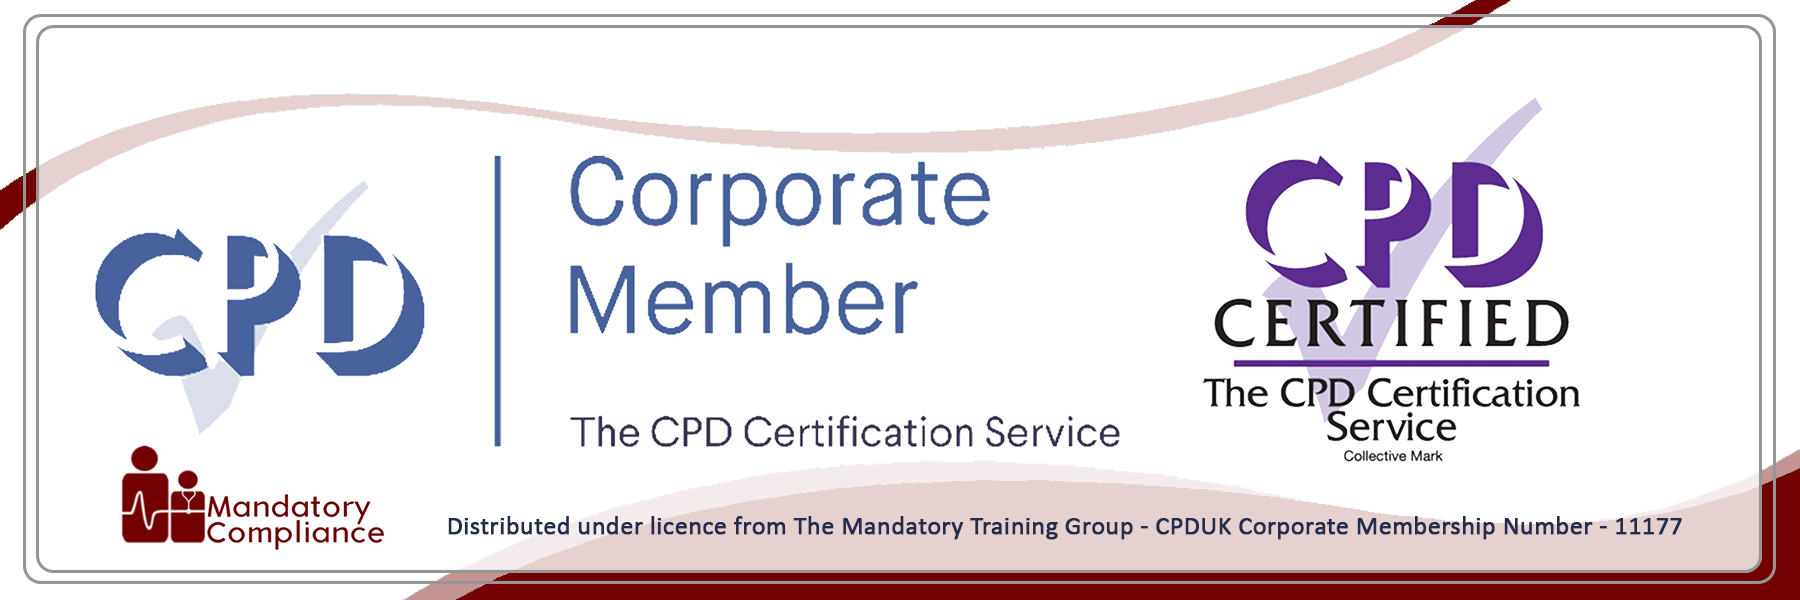 Donning and Doffing PPE for Care Workers - Online Learning Courses - E-Learning Courses - Mandatory Compliance UK---